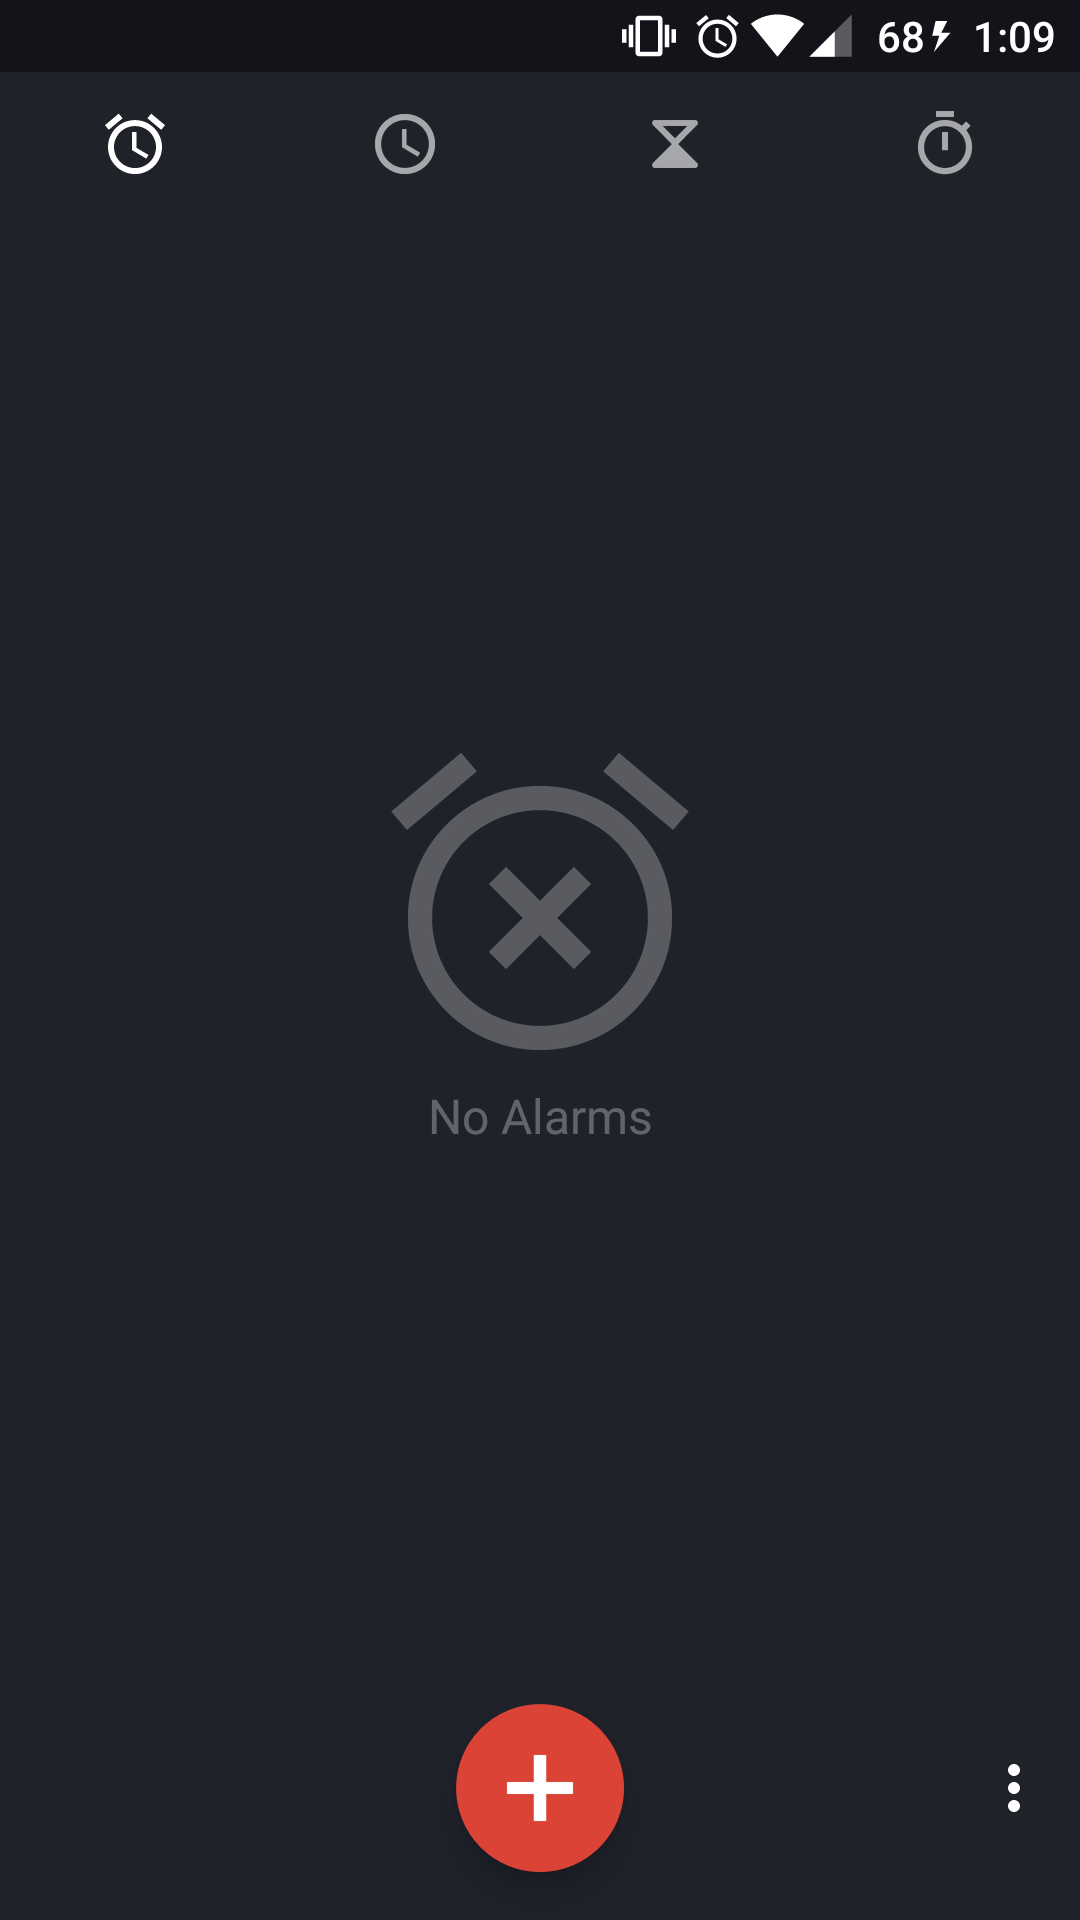 Annoying Alarm/Timer icon on the status bar and on lock